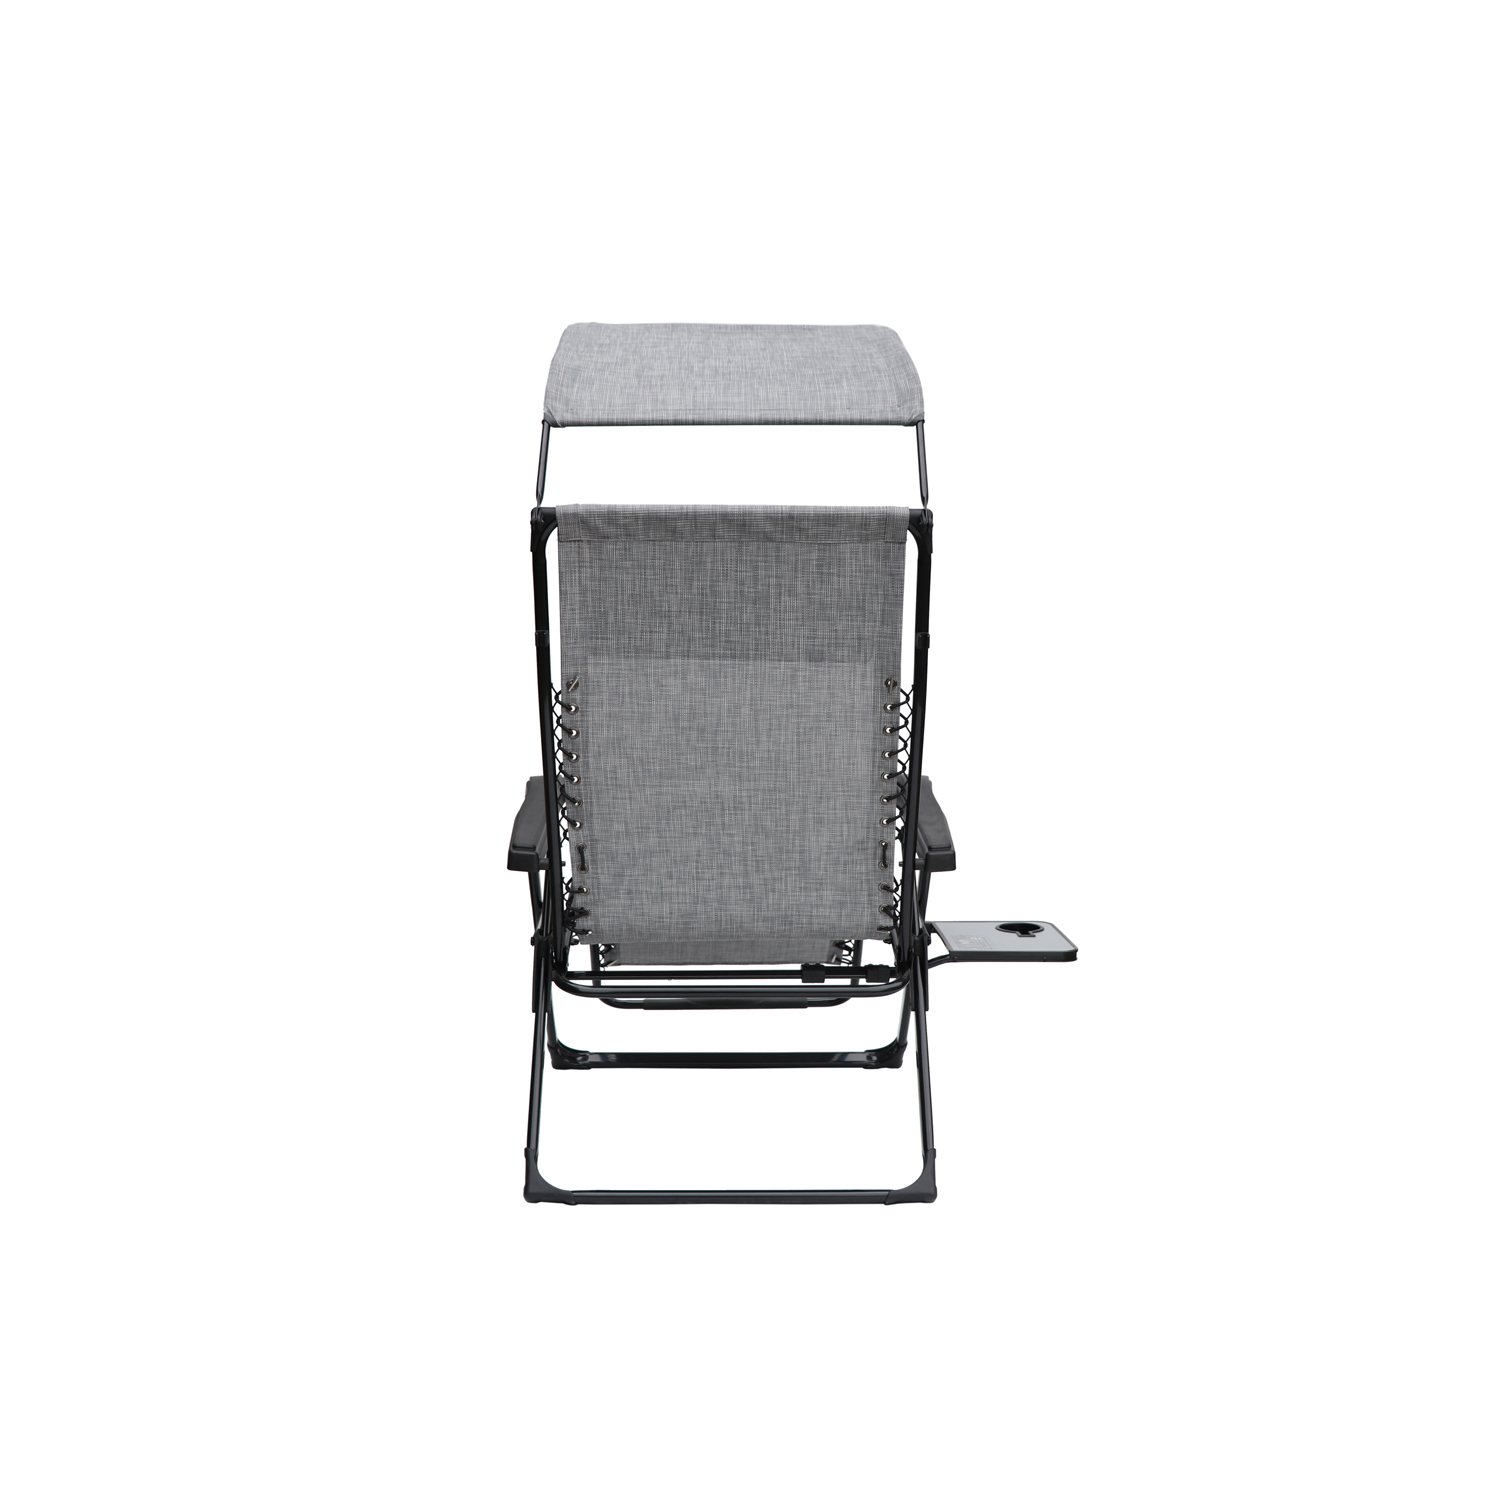 xl zero gravity chair with canopy sliding pillow folding side table how to protect wall from rocking mainstays extra large and tan walmart com